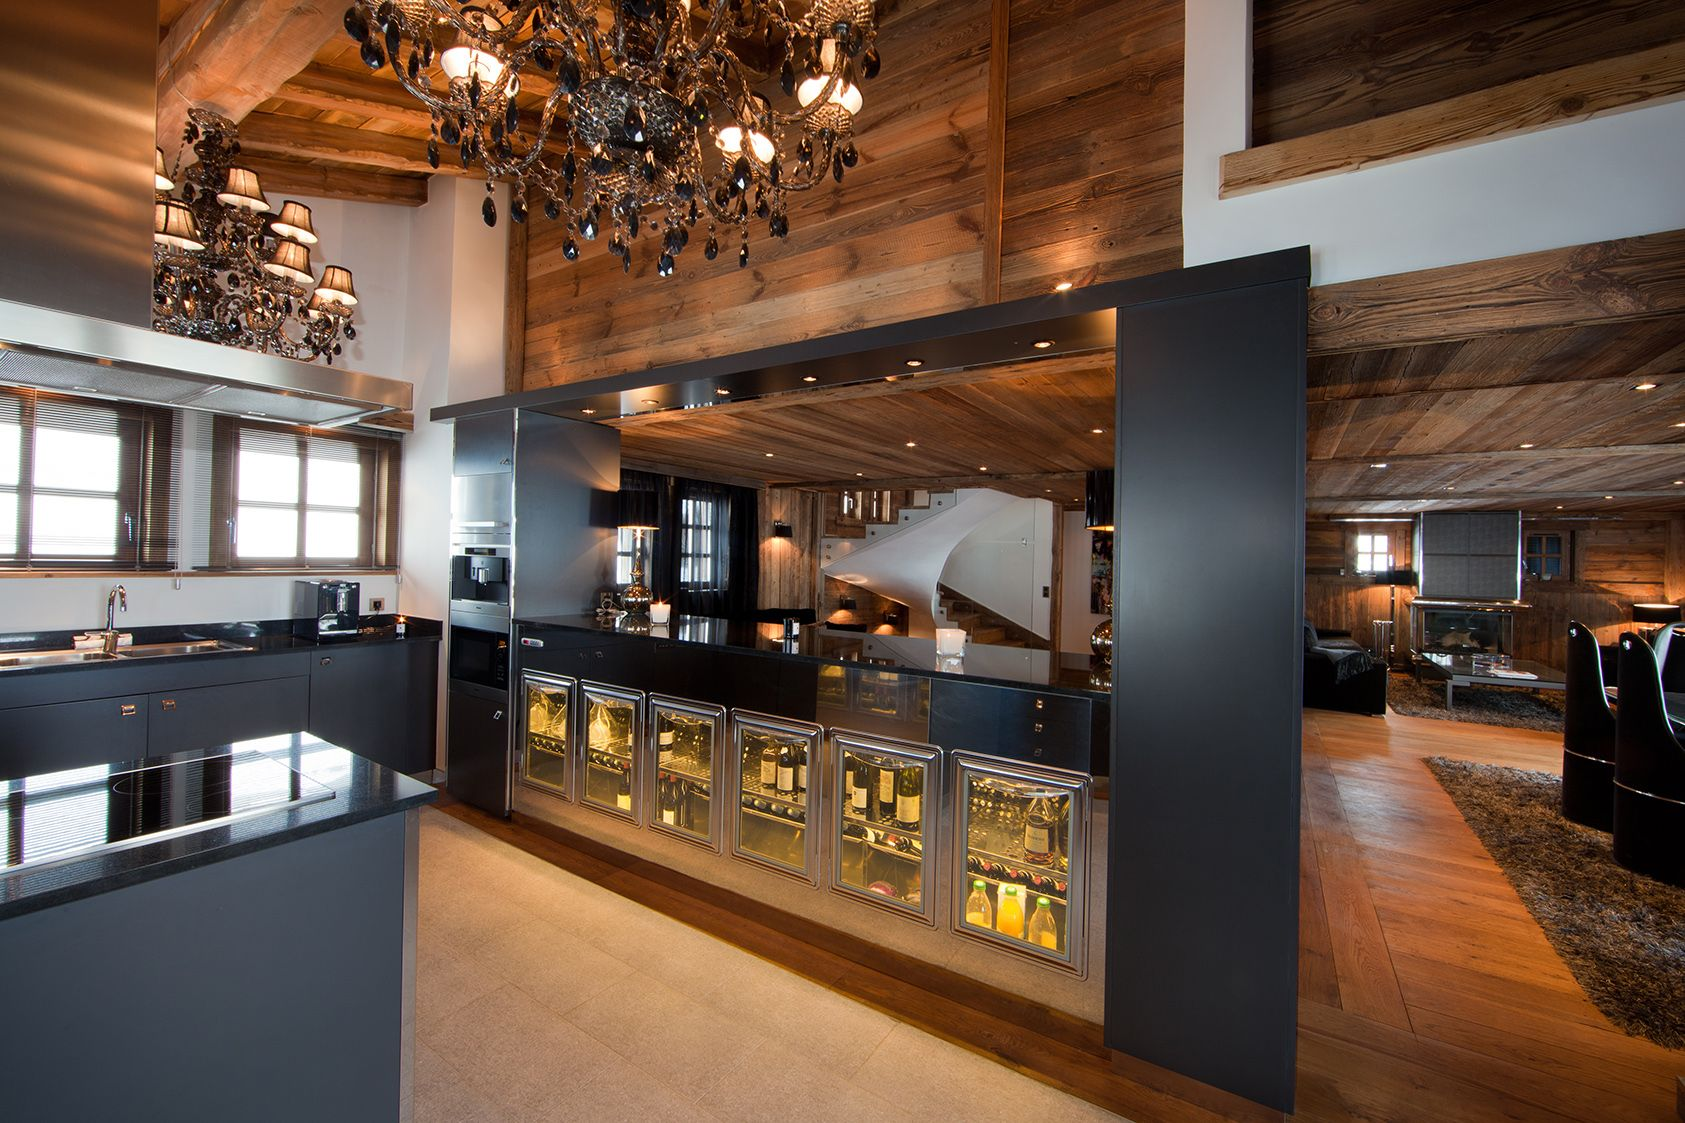 kitchen -ikhome -cuisine -chalet de luxe -luxury chalet -megeve -jaillet -rental chalet - wine cellar